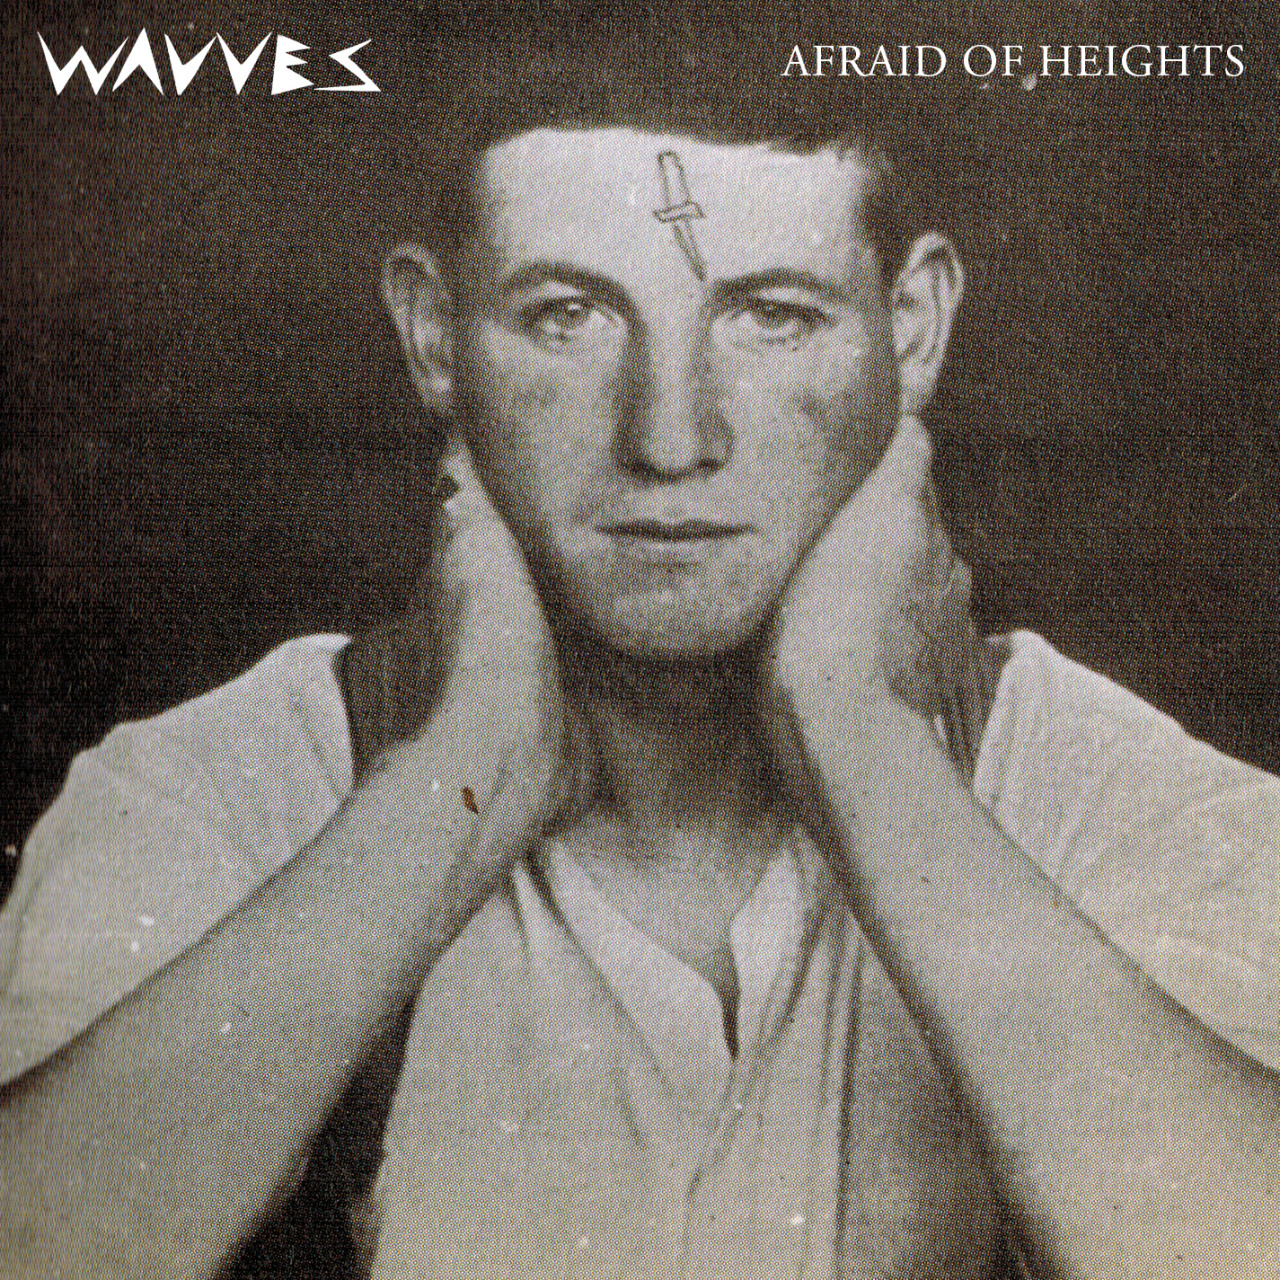 avengermattman:  Wavves - Afraid Of Heights  Finally listening to it!